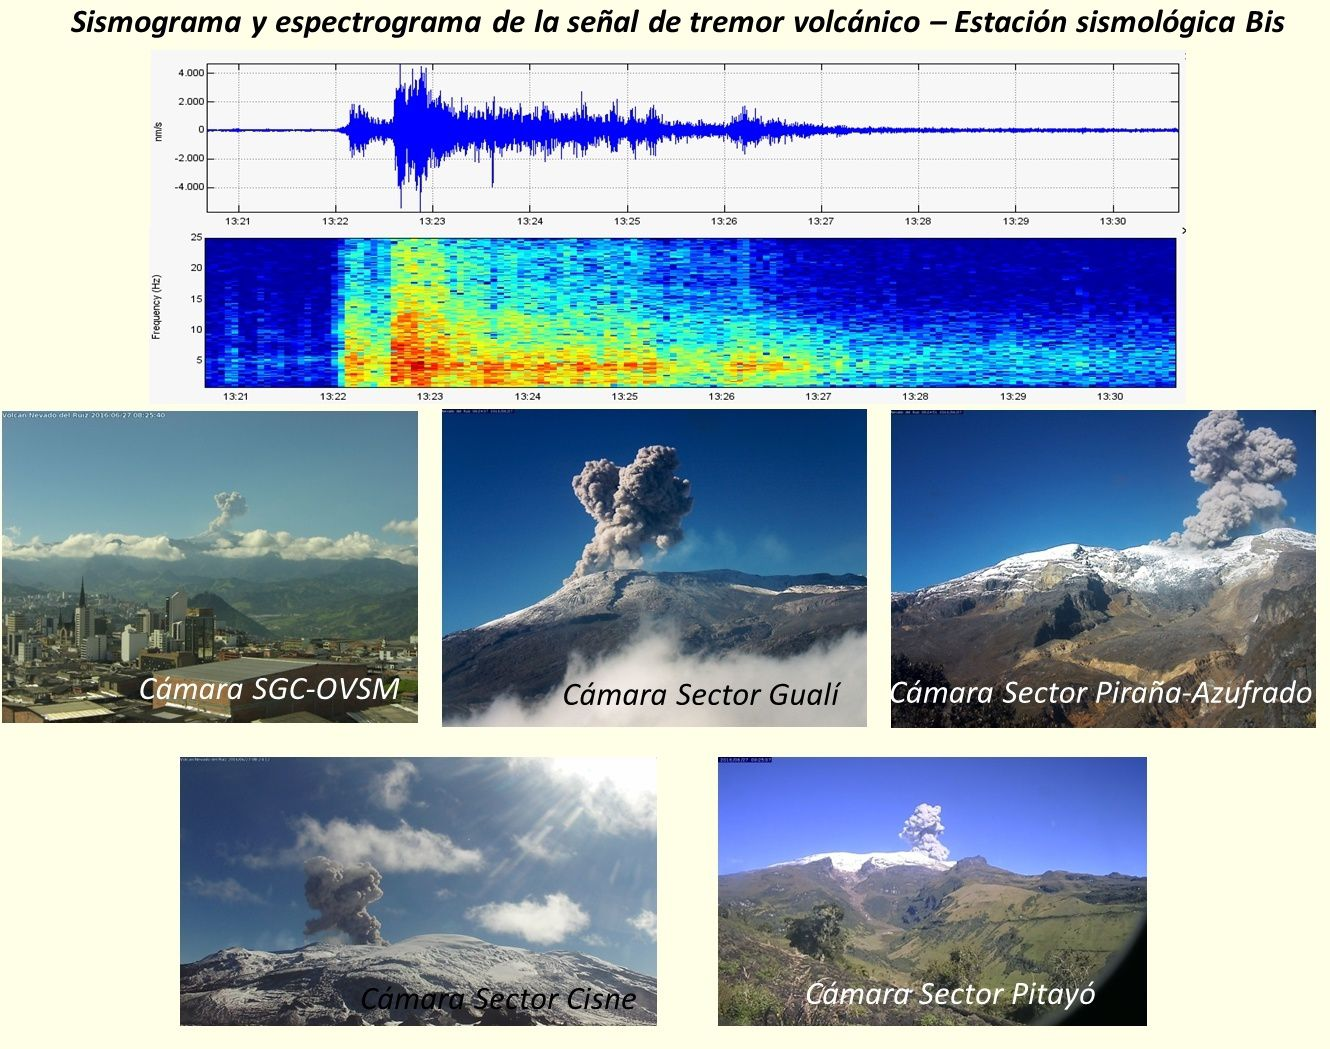 Nevado del Ruiz - tremor and ash emission / 06.27.2016 - Doc. SGC Manizales